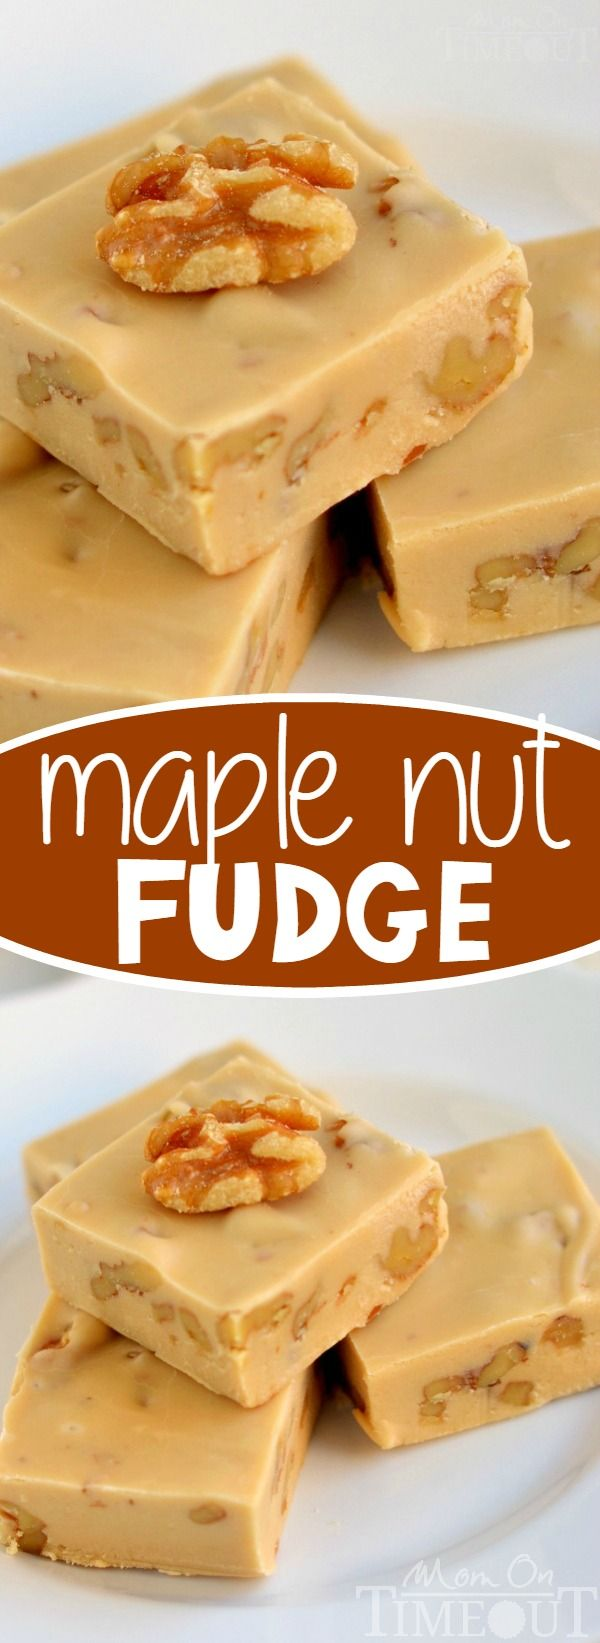 This Creamy Maple Nut Fudge is a breeze to make! Crunchy toasted walnuts add amazing texture and flavor to this decadent fudge recipe! // Mom On Timeout